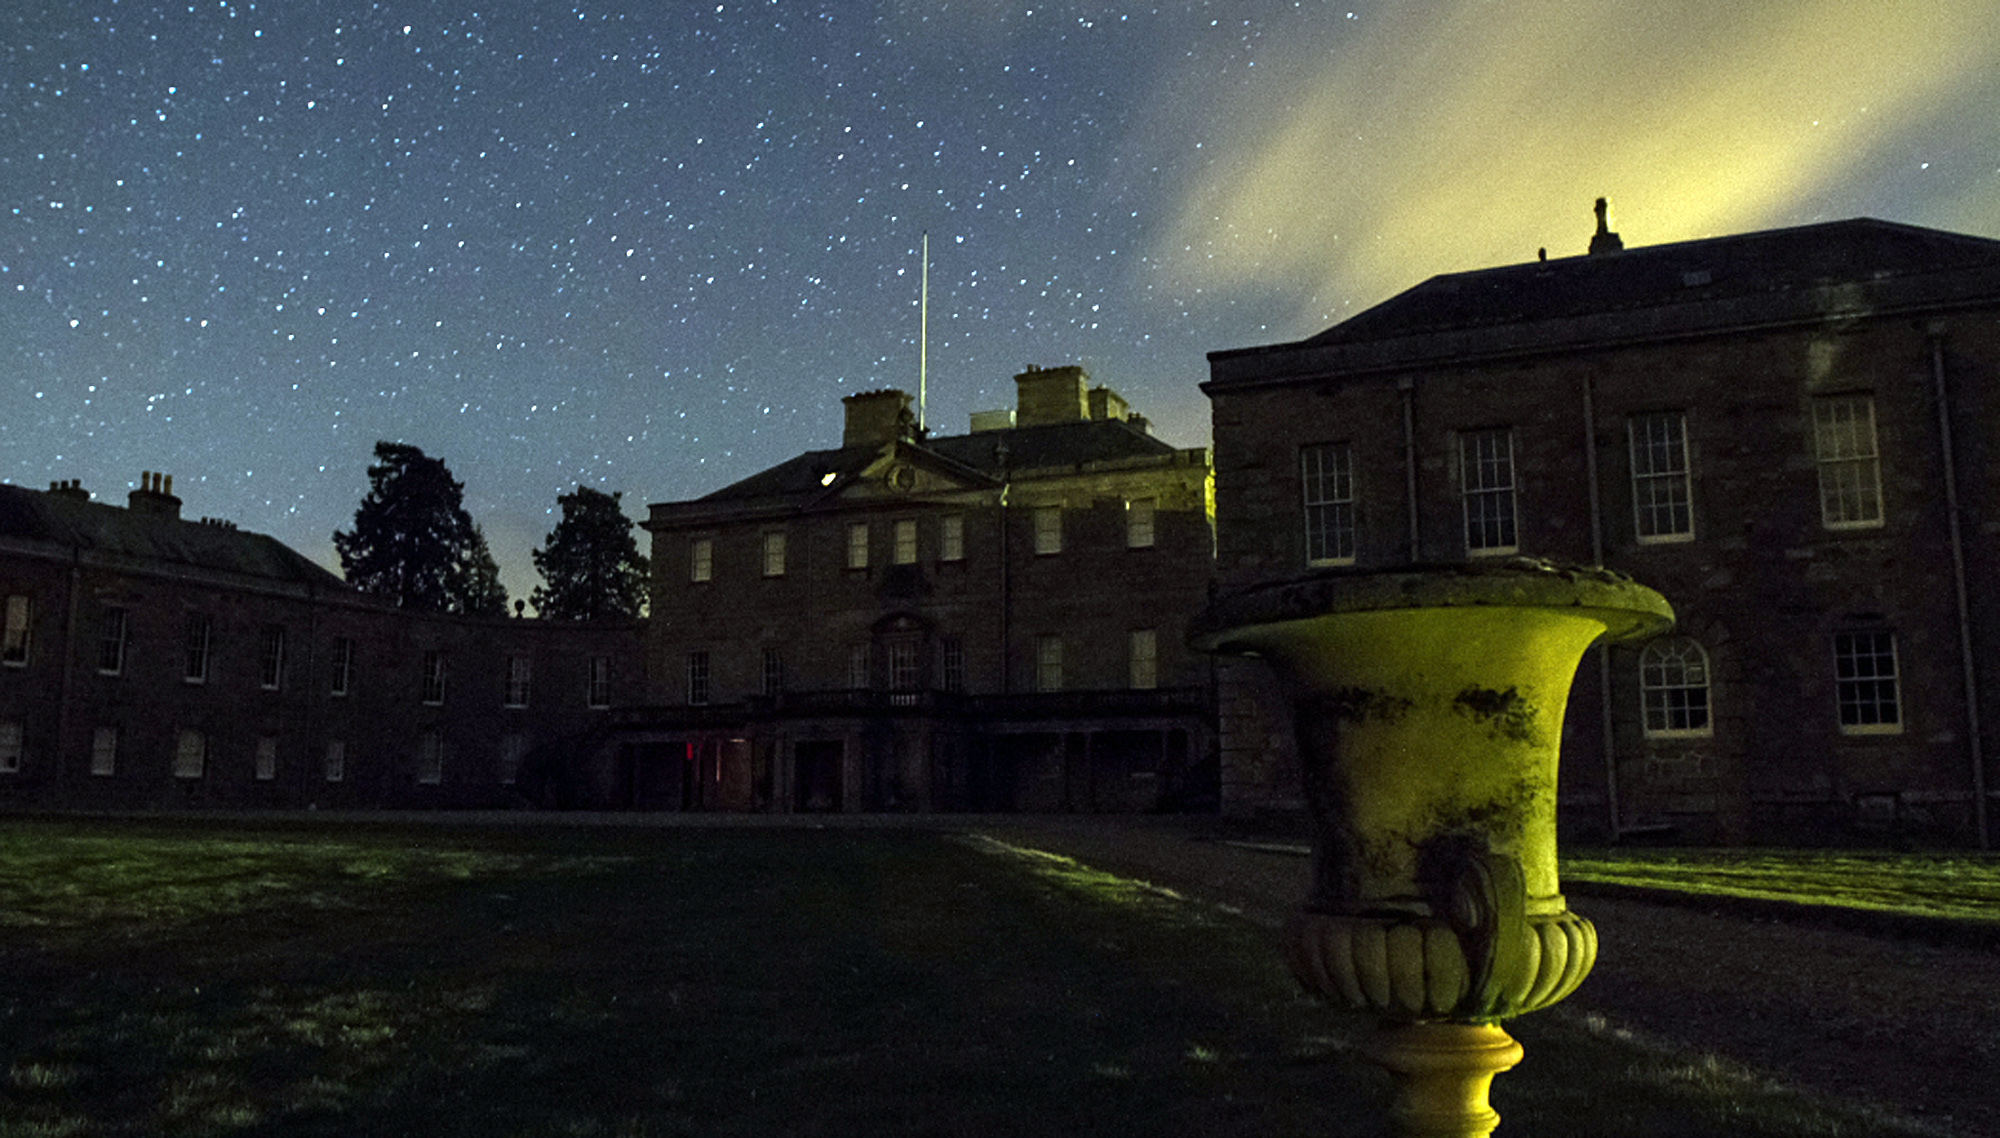 Haddo House at night by Cain Scrimgeour.